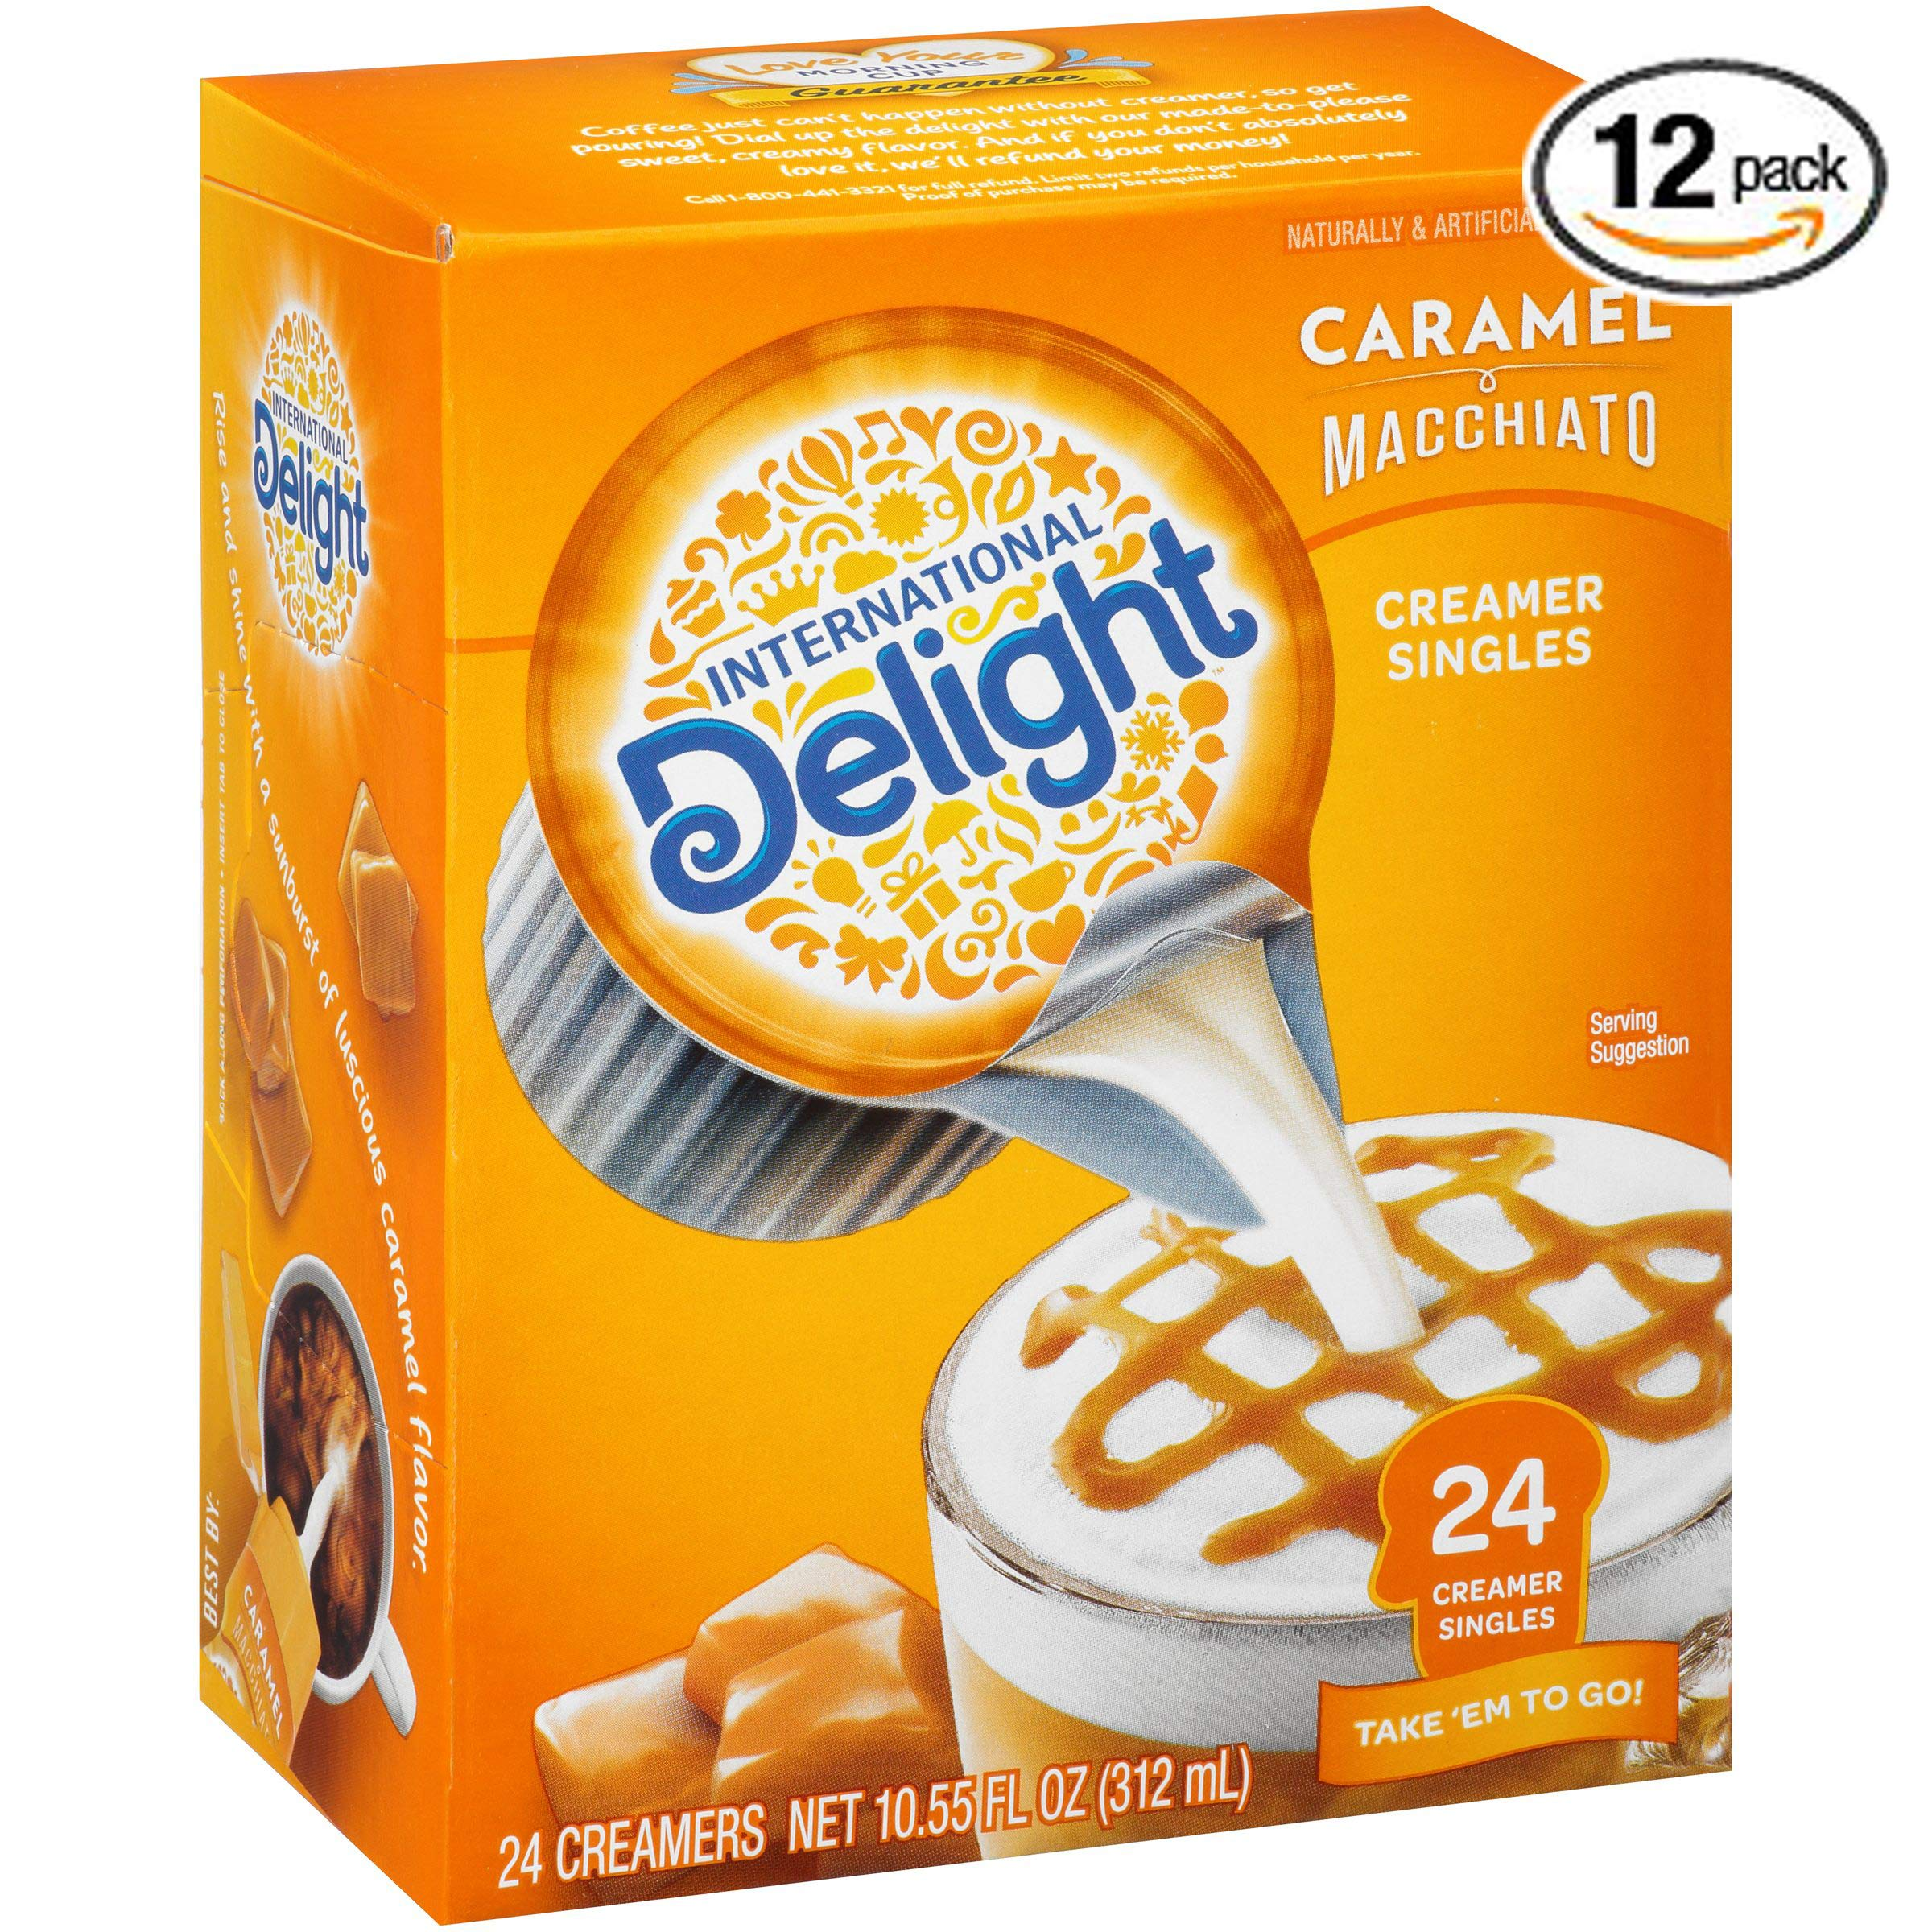 International Delight, Caramel Macchiato, Single-Serve Coffee Creamers, 24 Count (Pack of 6), Shelf Stable Non-Dairy Flavored Coffee Creamer, Great for Home Use, 24 Count (Pack of 12)